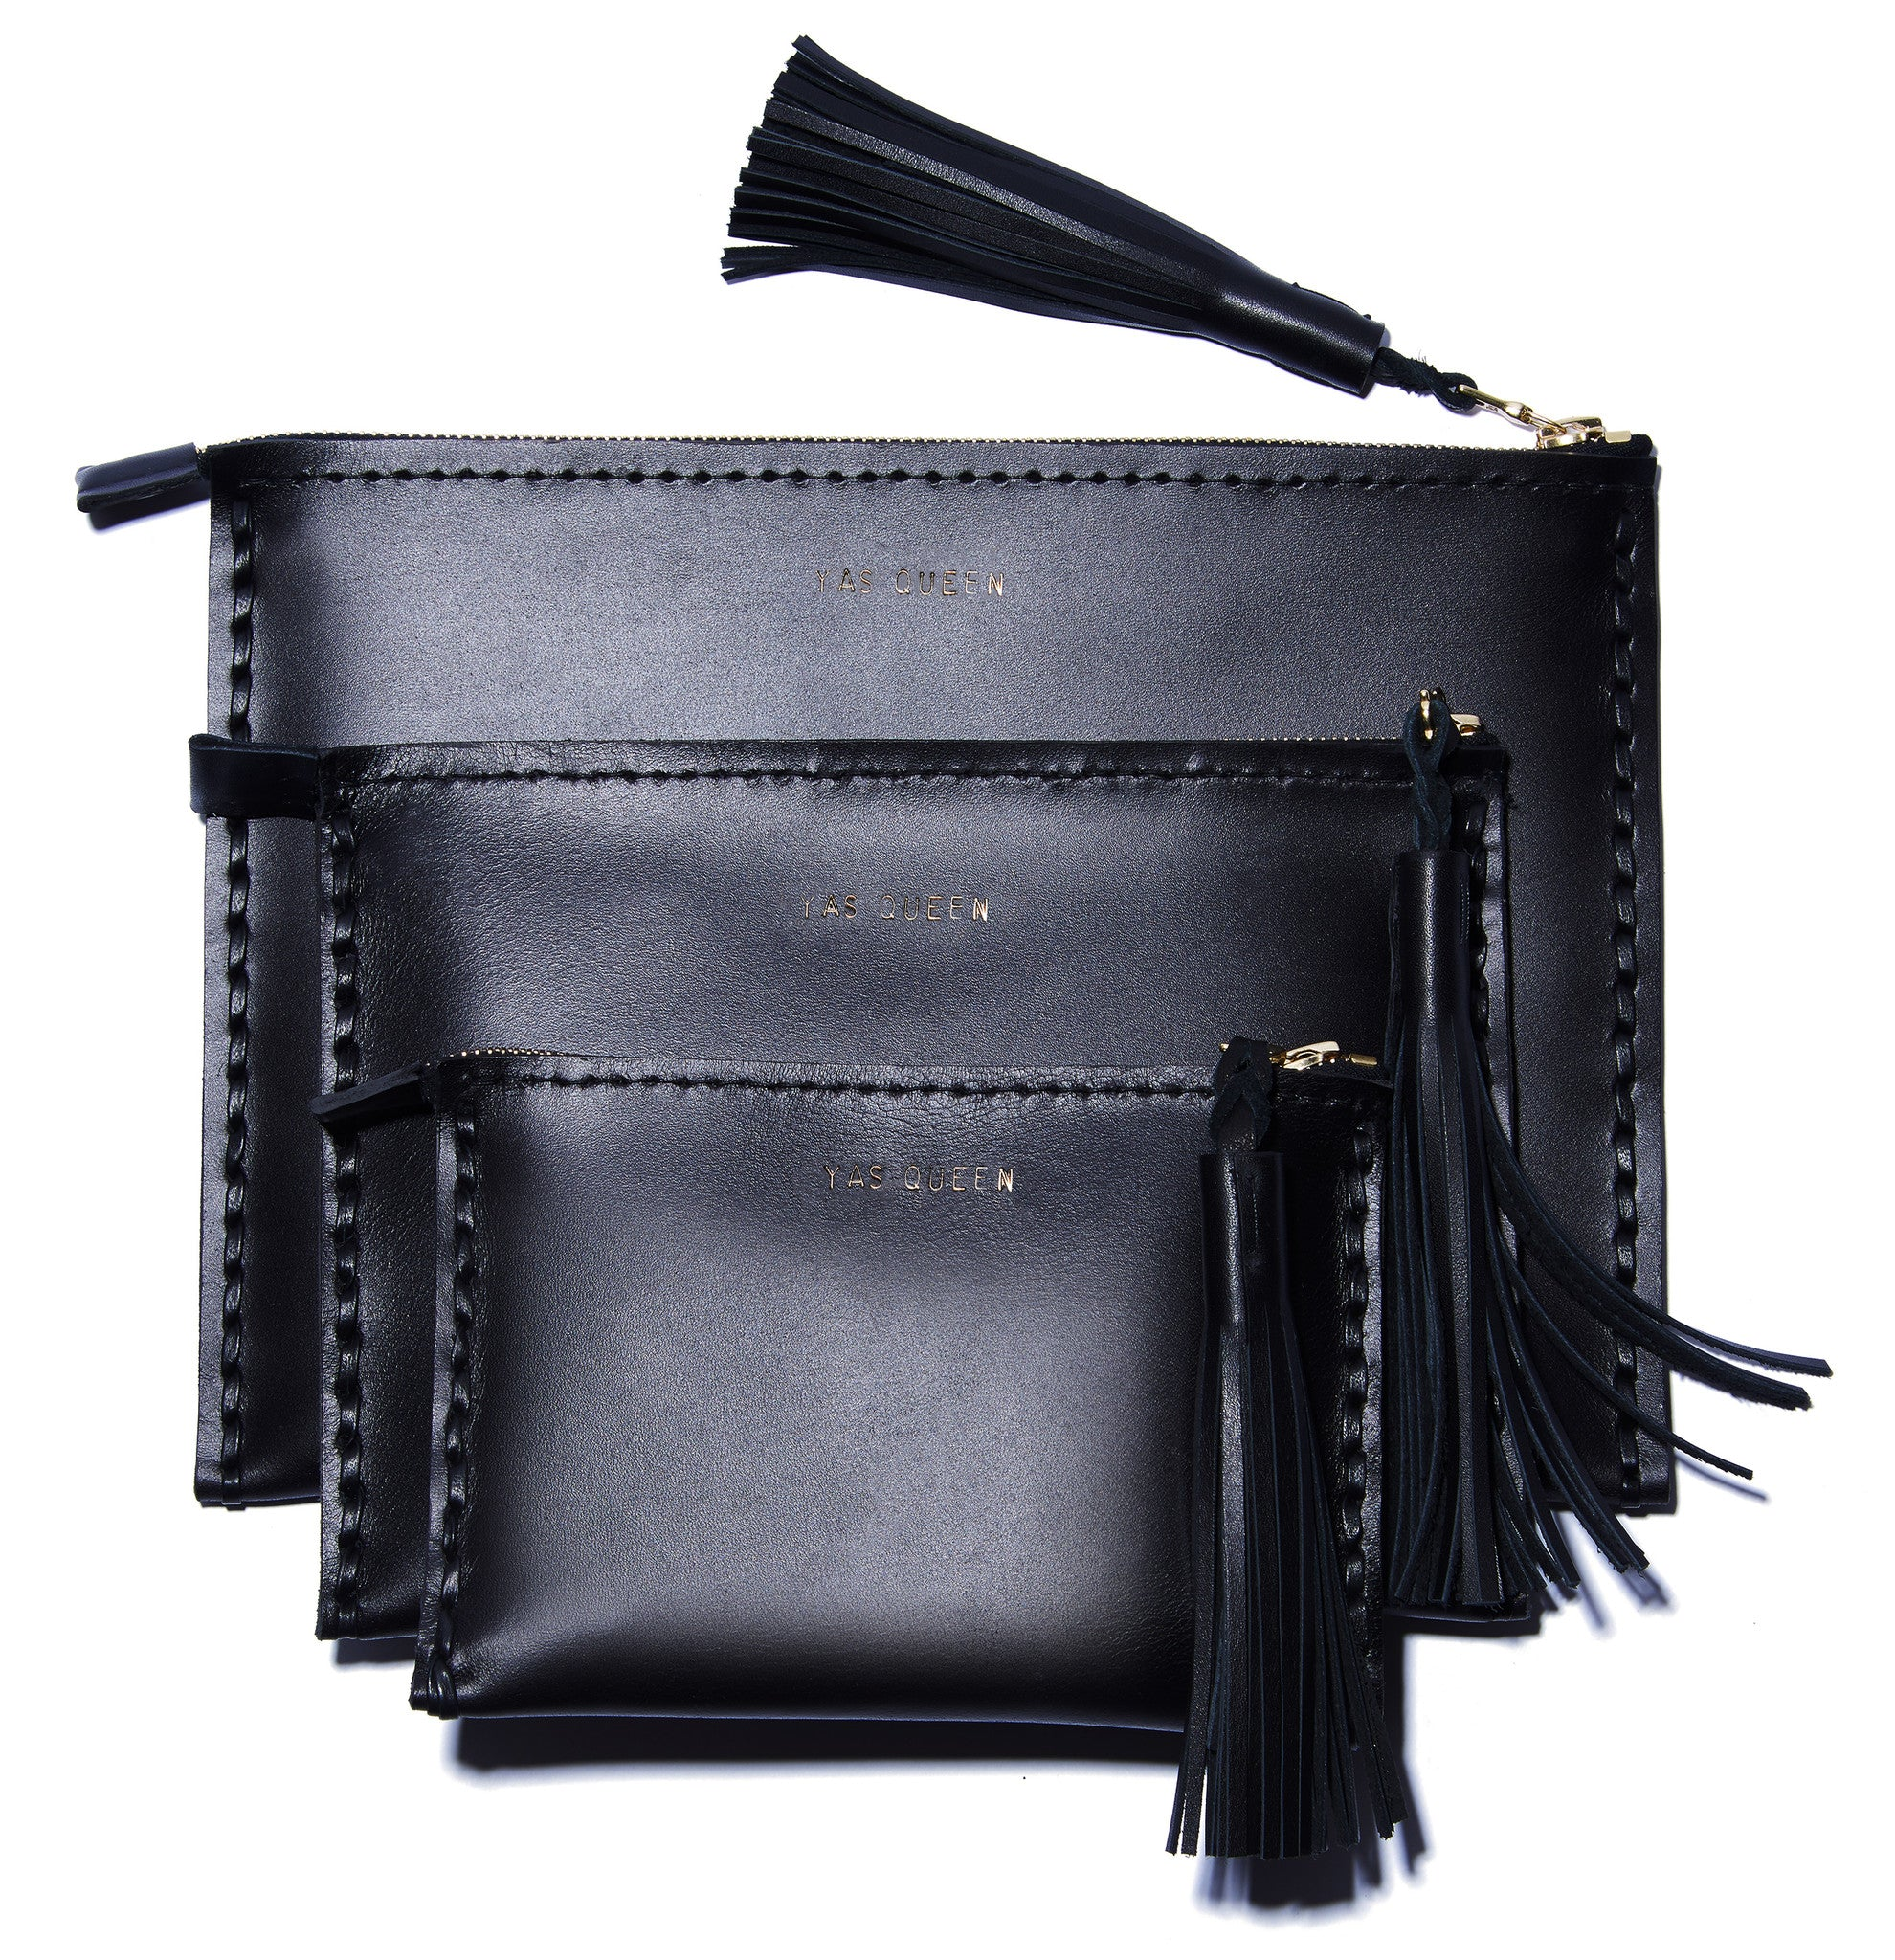 Embossed YAS QUEEN Laced Leather Clutch Pouch Wendy Nichol Luxury Handbags Bag Purse Designer Handmade in NYC New York City Zip Zipper Pouch Wallet Fringe Tassel Embossed Gold Silver Foil Small Medium Large Size Smooth High Quality Black Leather YAS QUEEN CLUTCH